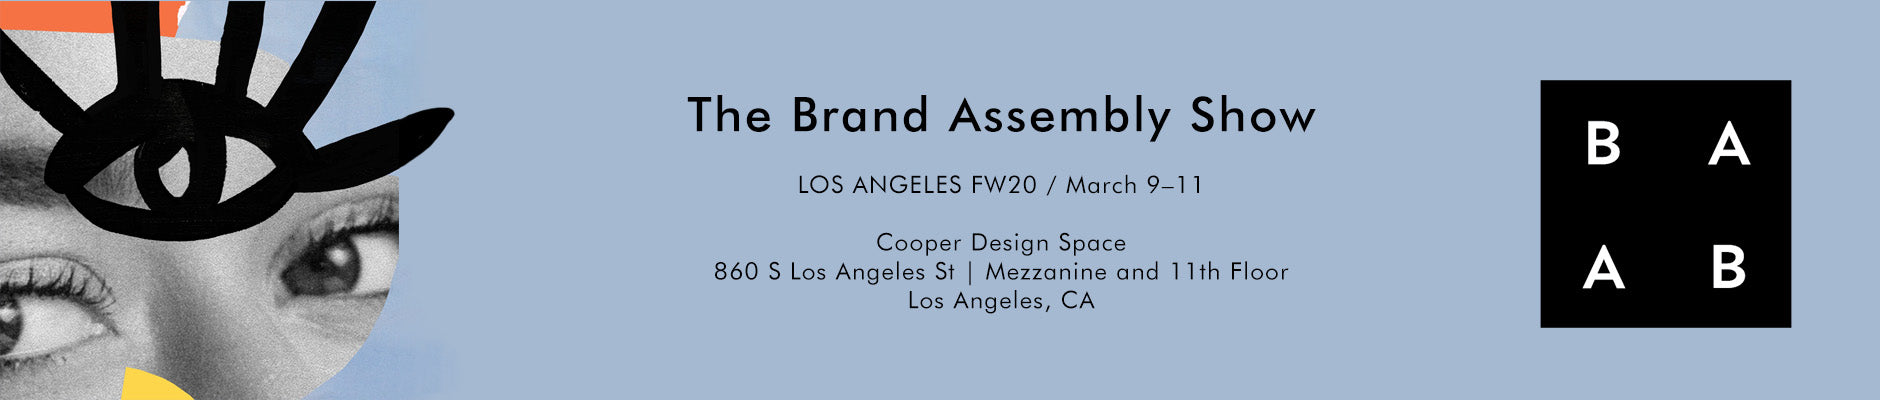 Brand Assembly Los Angeles 2020